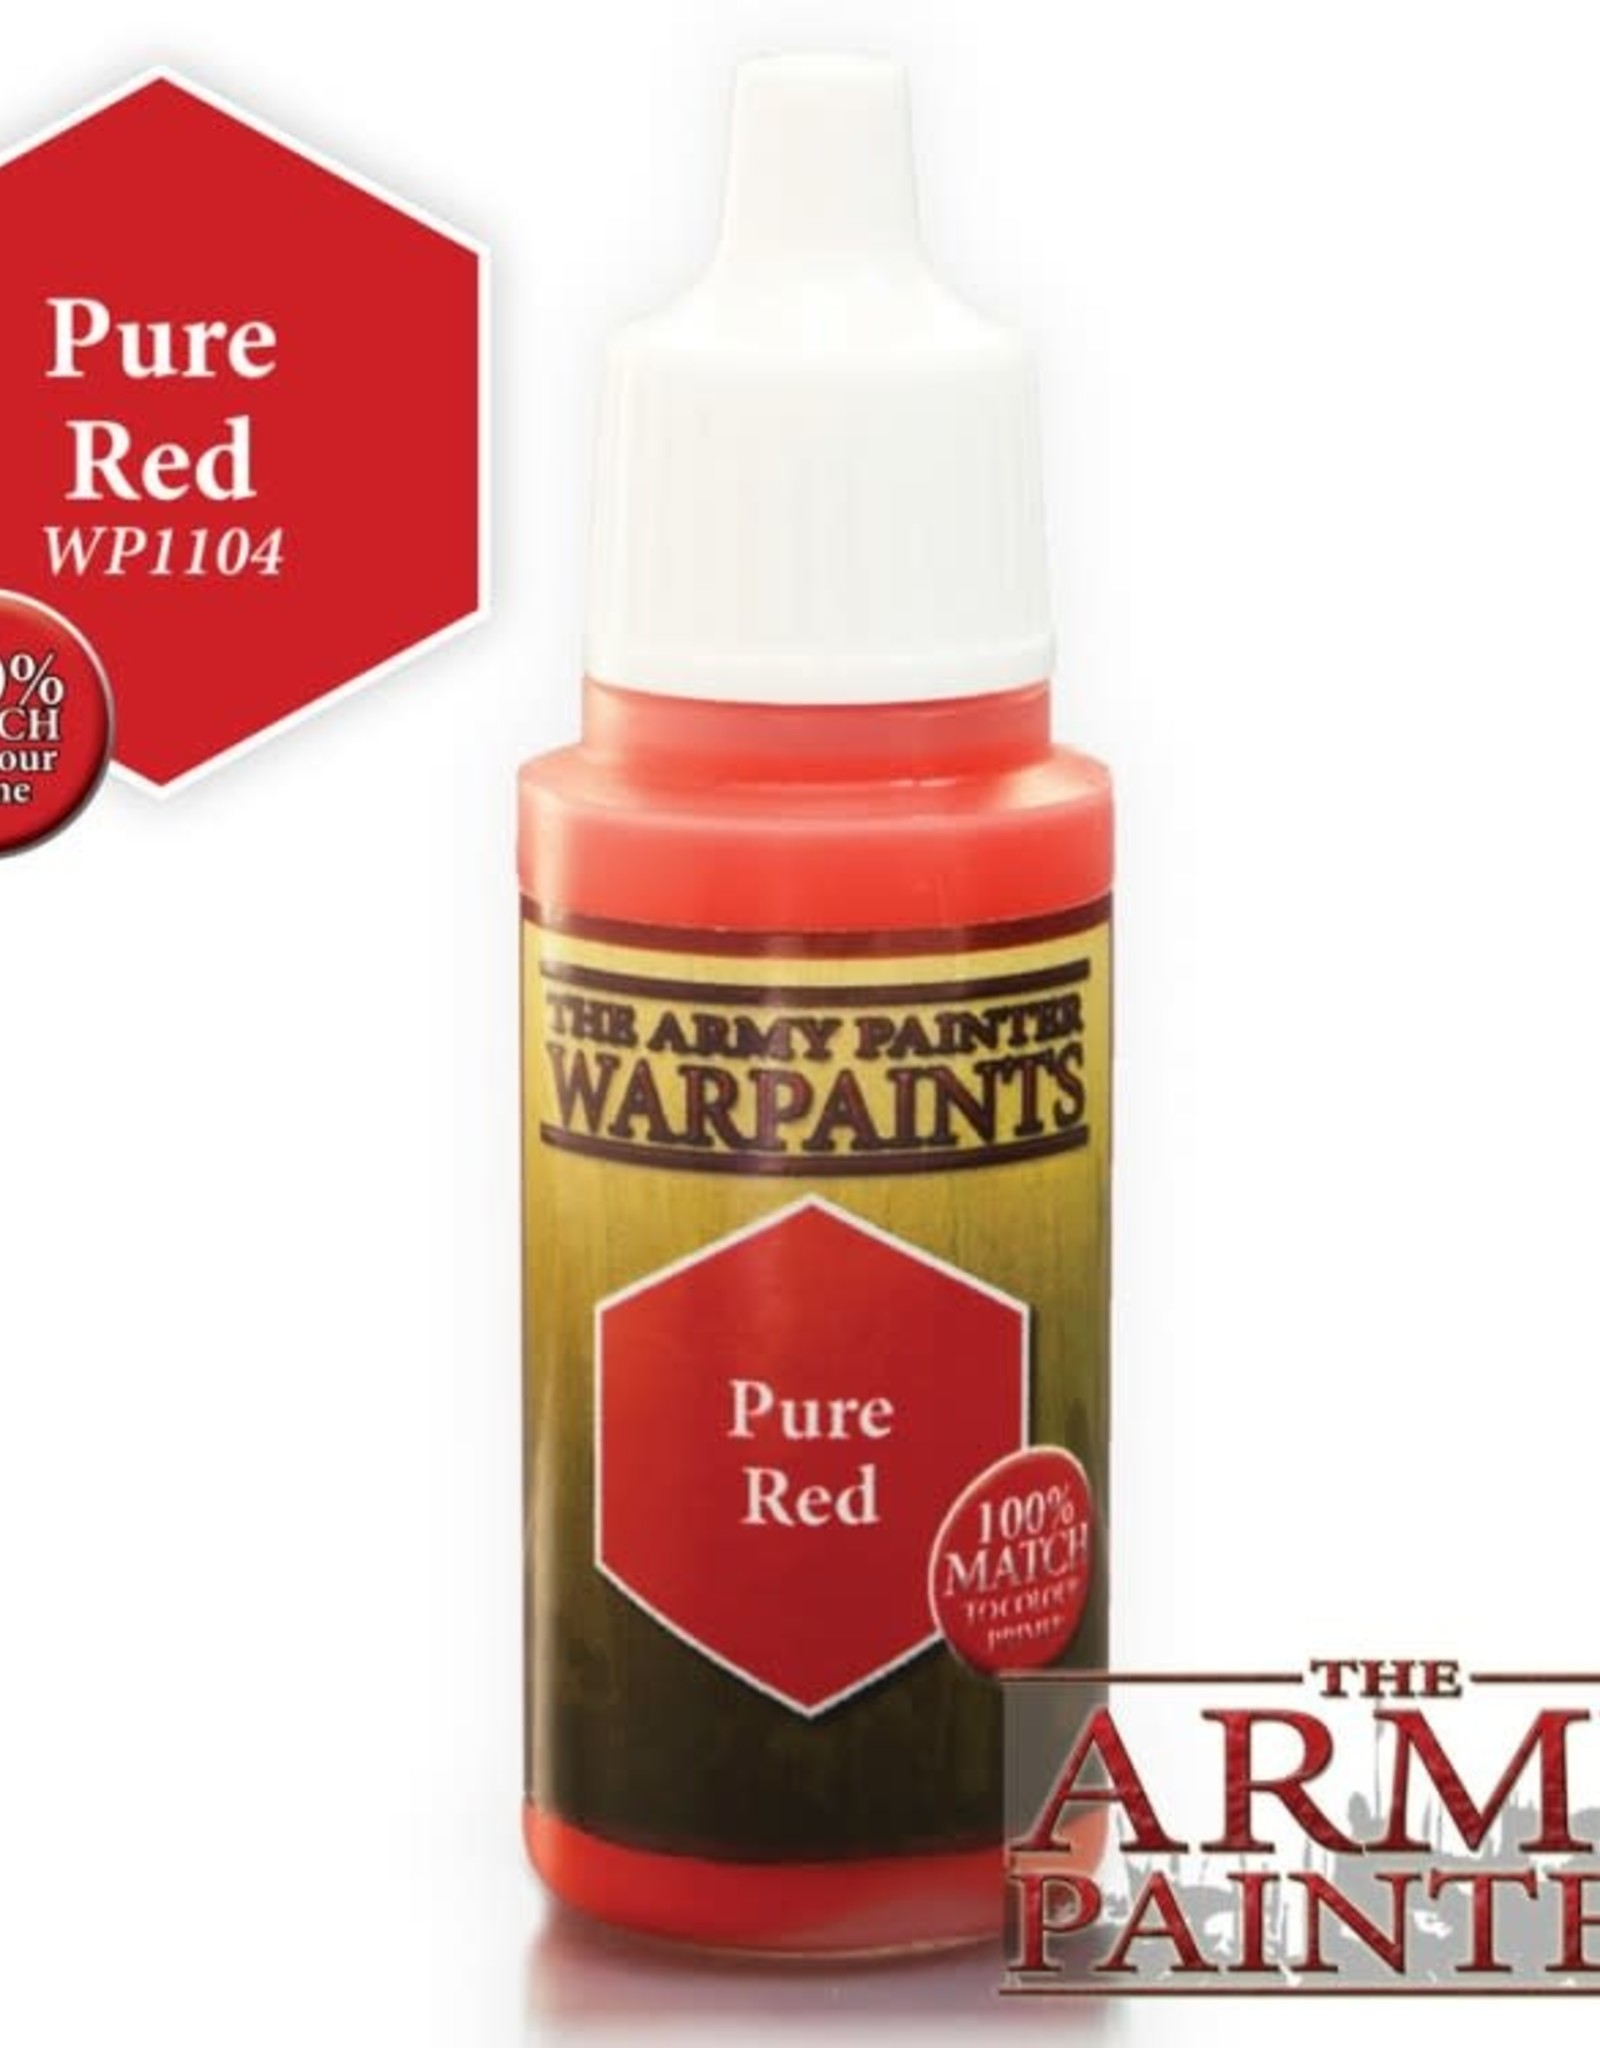 The Army Painter Warpaints - Pure Red